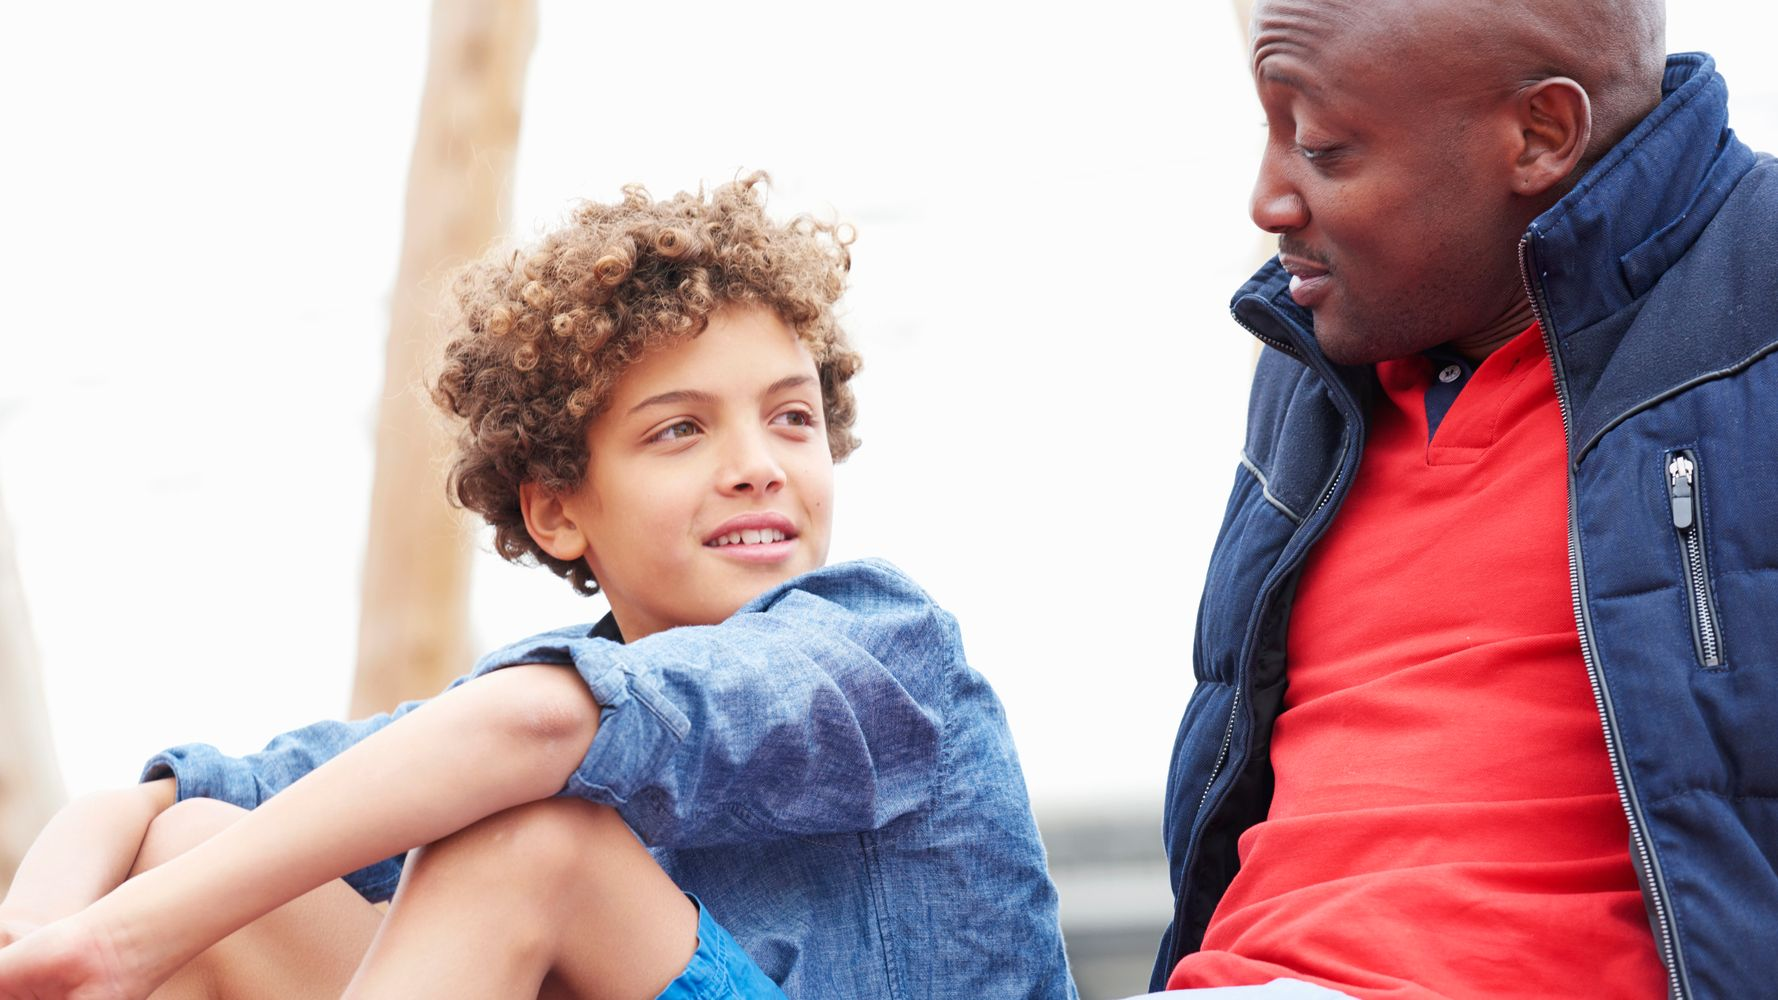 The Surprising Ways We Can Bolster Our Kids' Mental Health